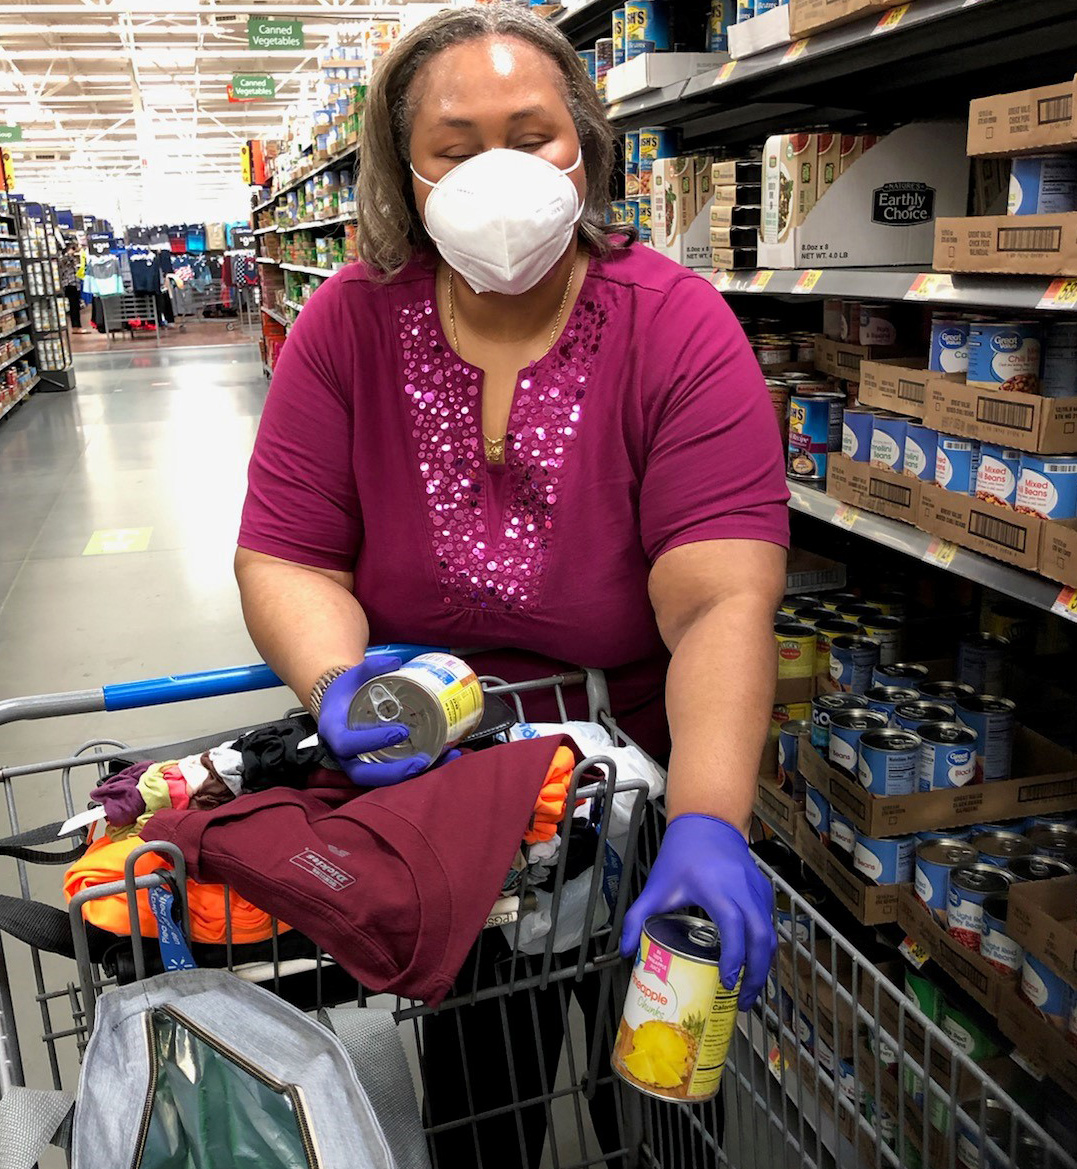 A middle-aged Black woman wearing a mask and nitrile gloves shops for groceries. She is placing a can in a shopping cart.